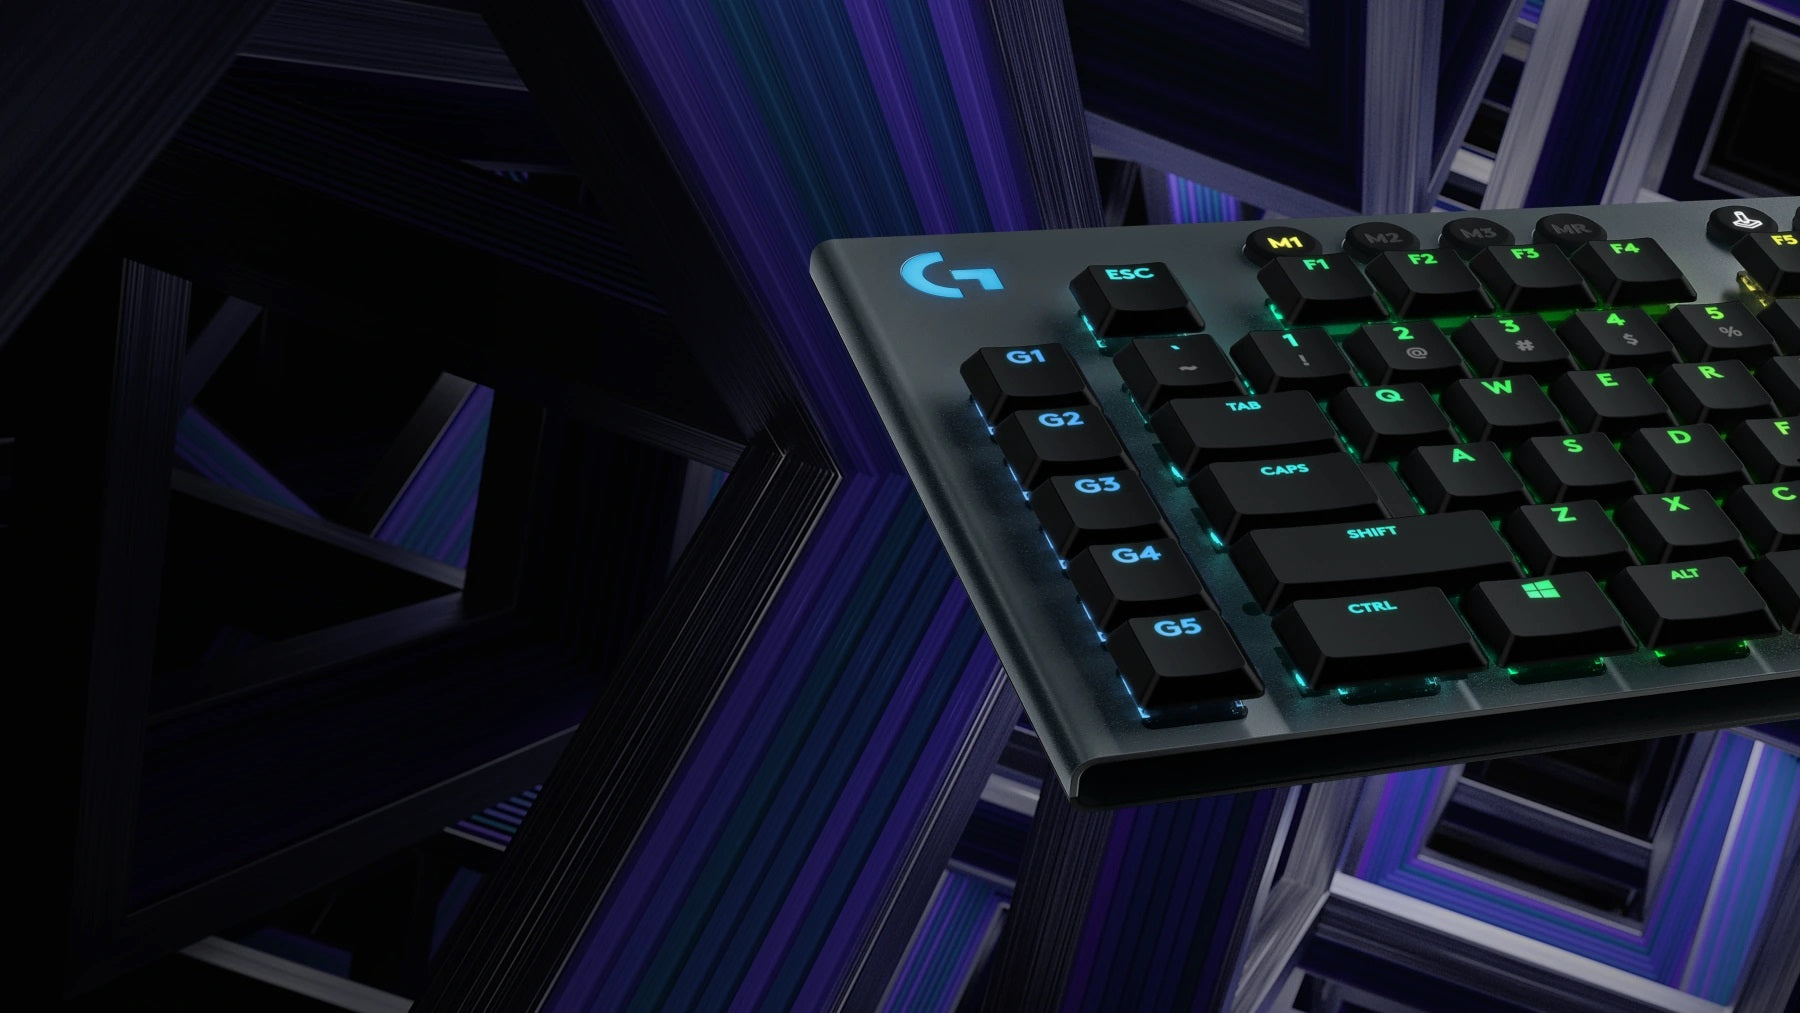 ENDLESS CONTROL - Sleek and sophisticated G915 offers a focused, high-performance experience with every feature you need to take total control—like programmable G-keys and onboard profiles. Make G915 the command center for your PC.